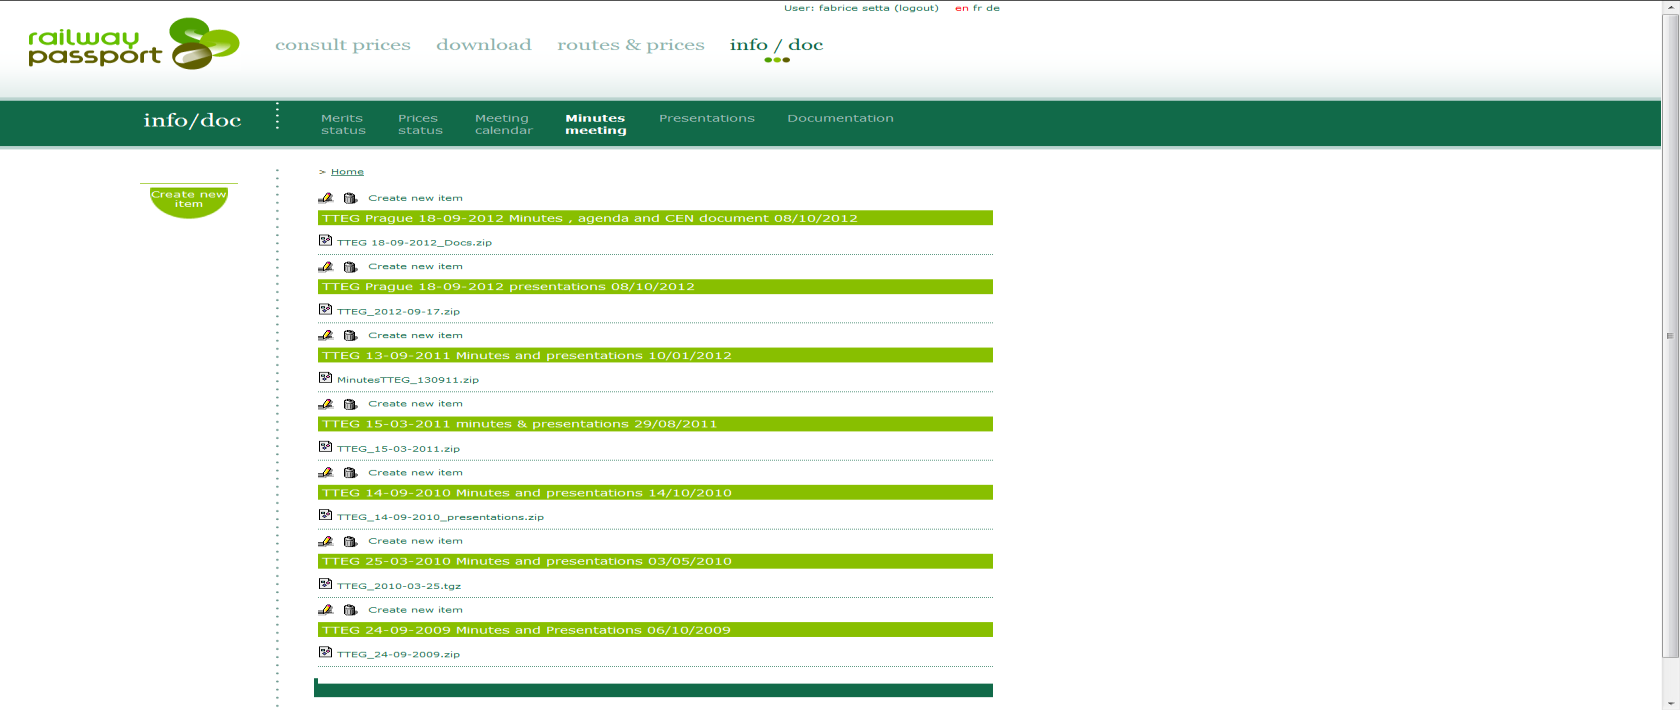 Info / doc اطالعات سند / > Info / doc is the part of passport where to find all related documentation